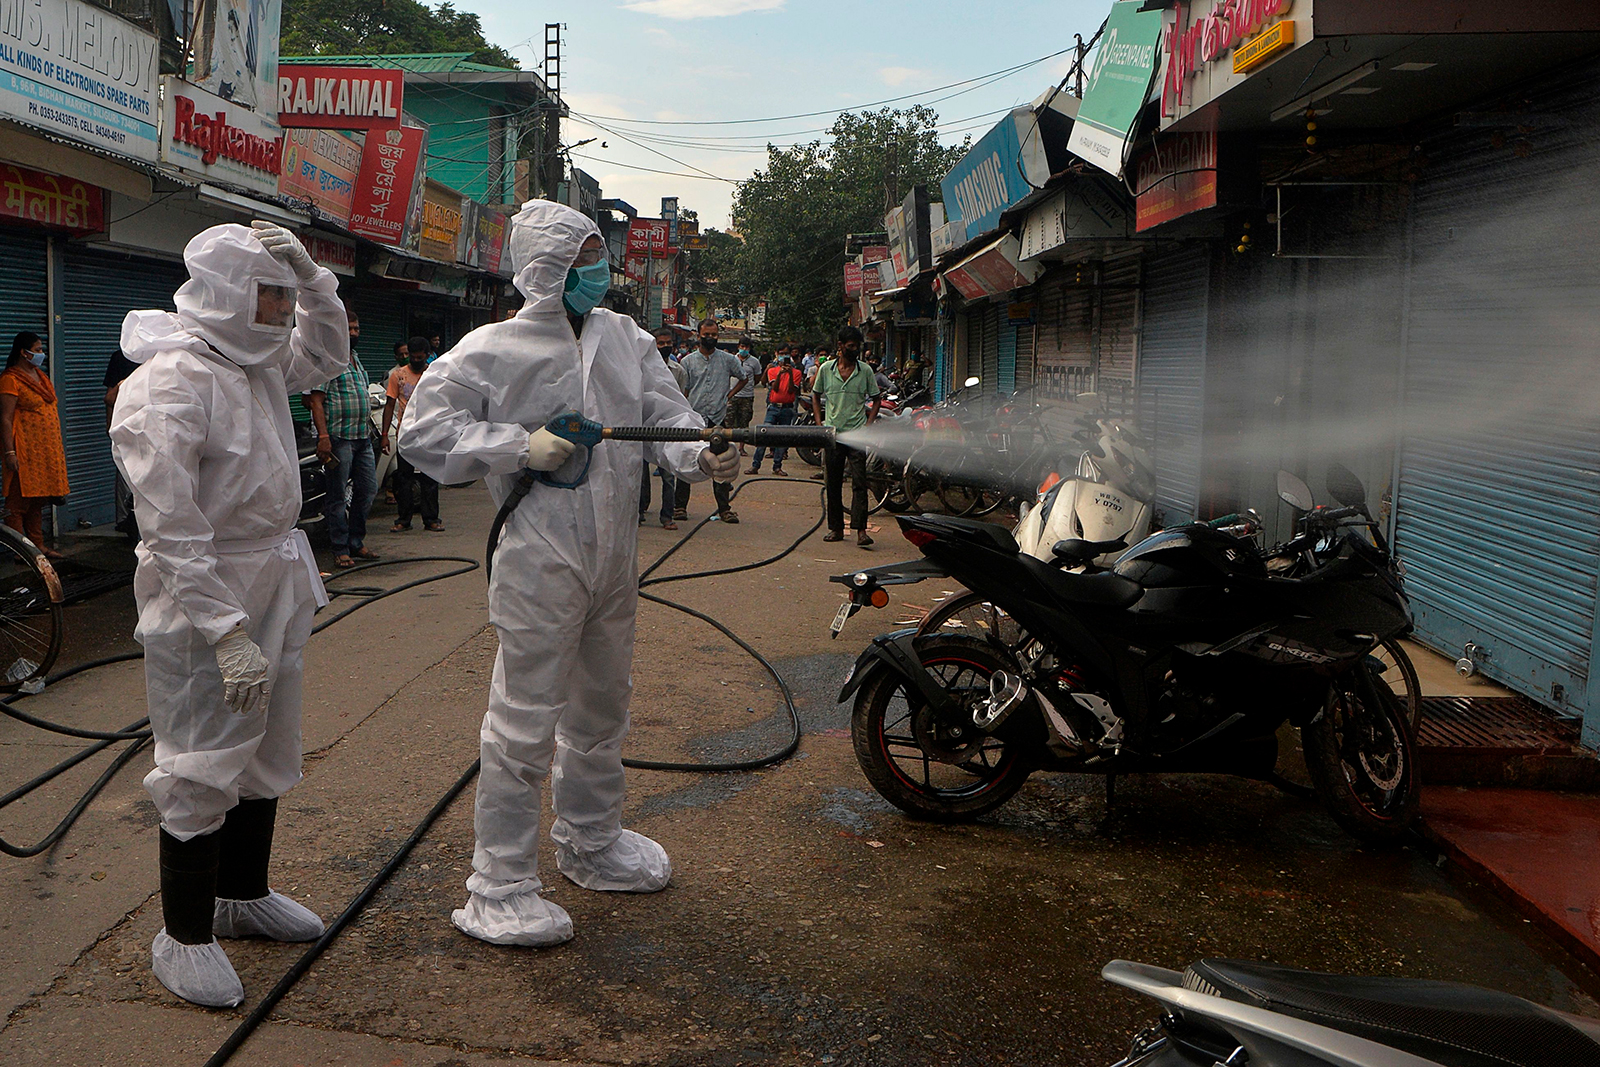 Firefighters wearing personal protective gear spray disinfectant in a closed market in Siliguri, India on June 22.